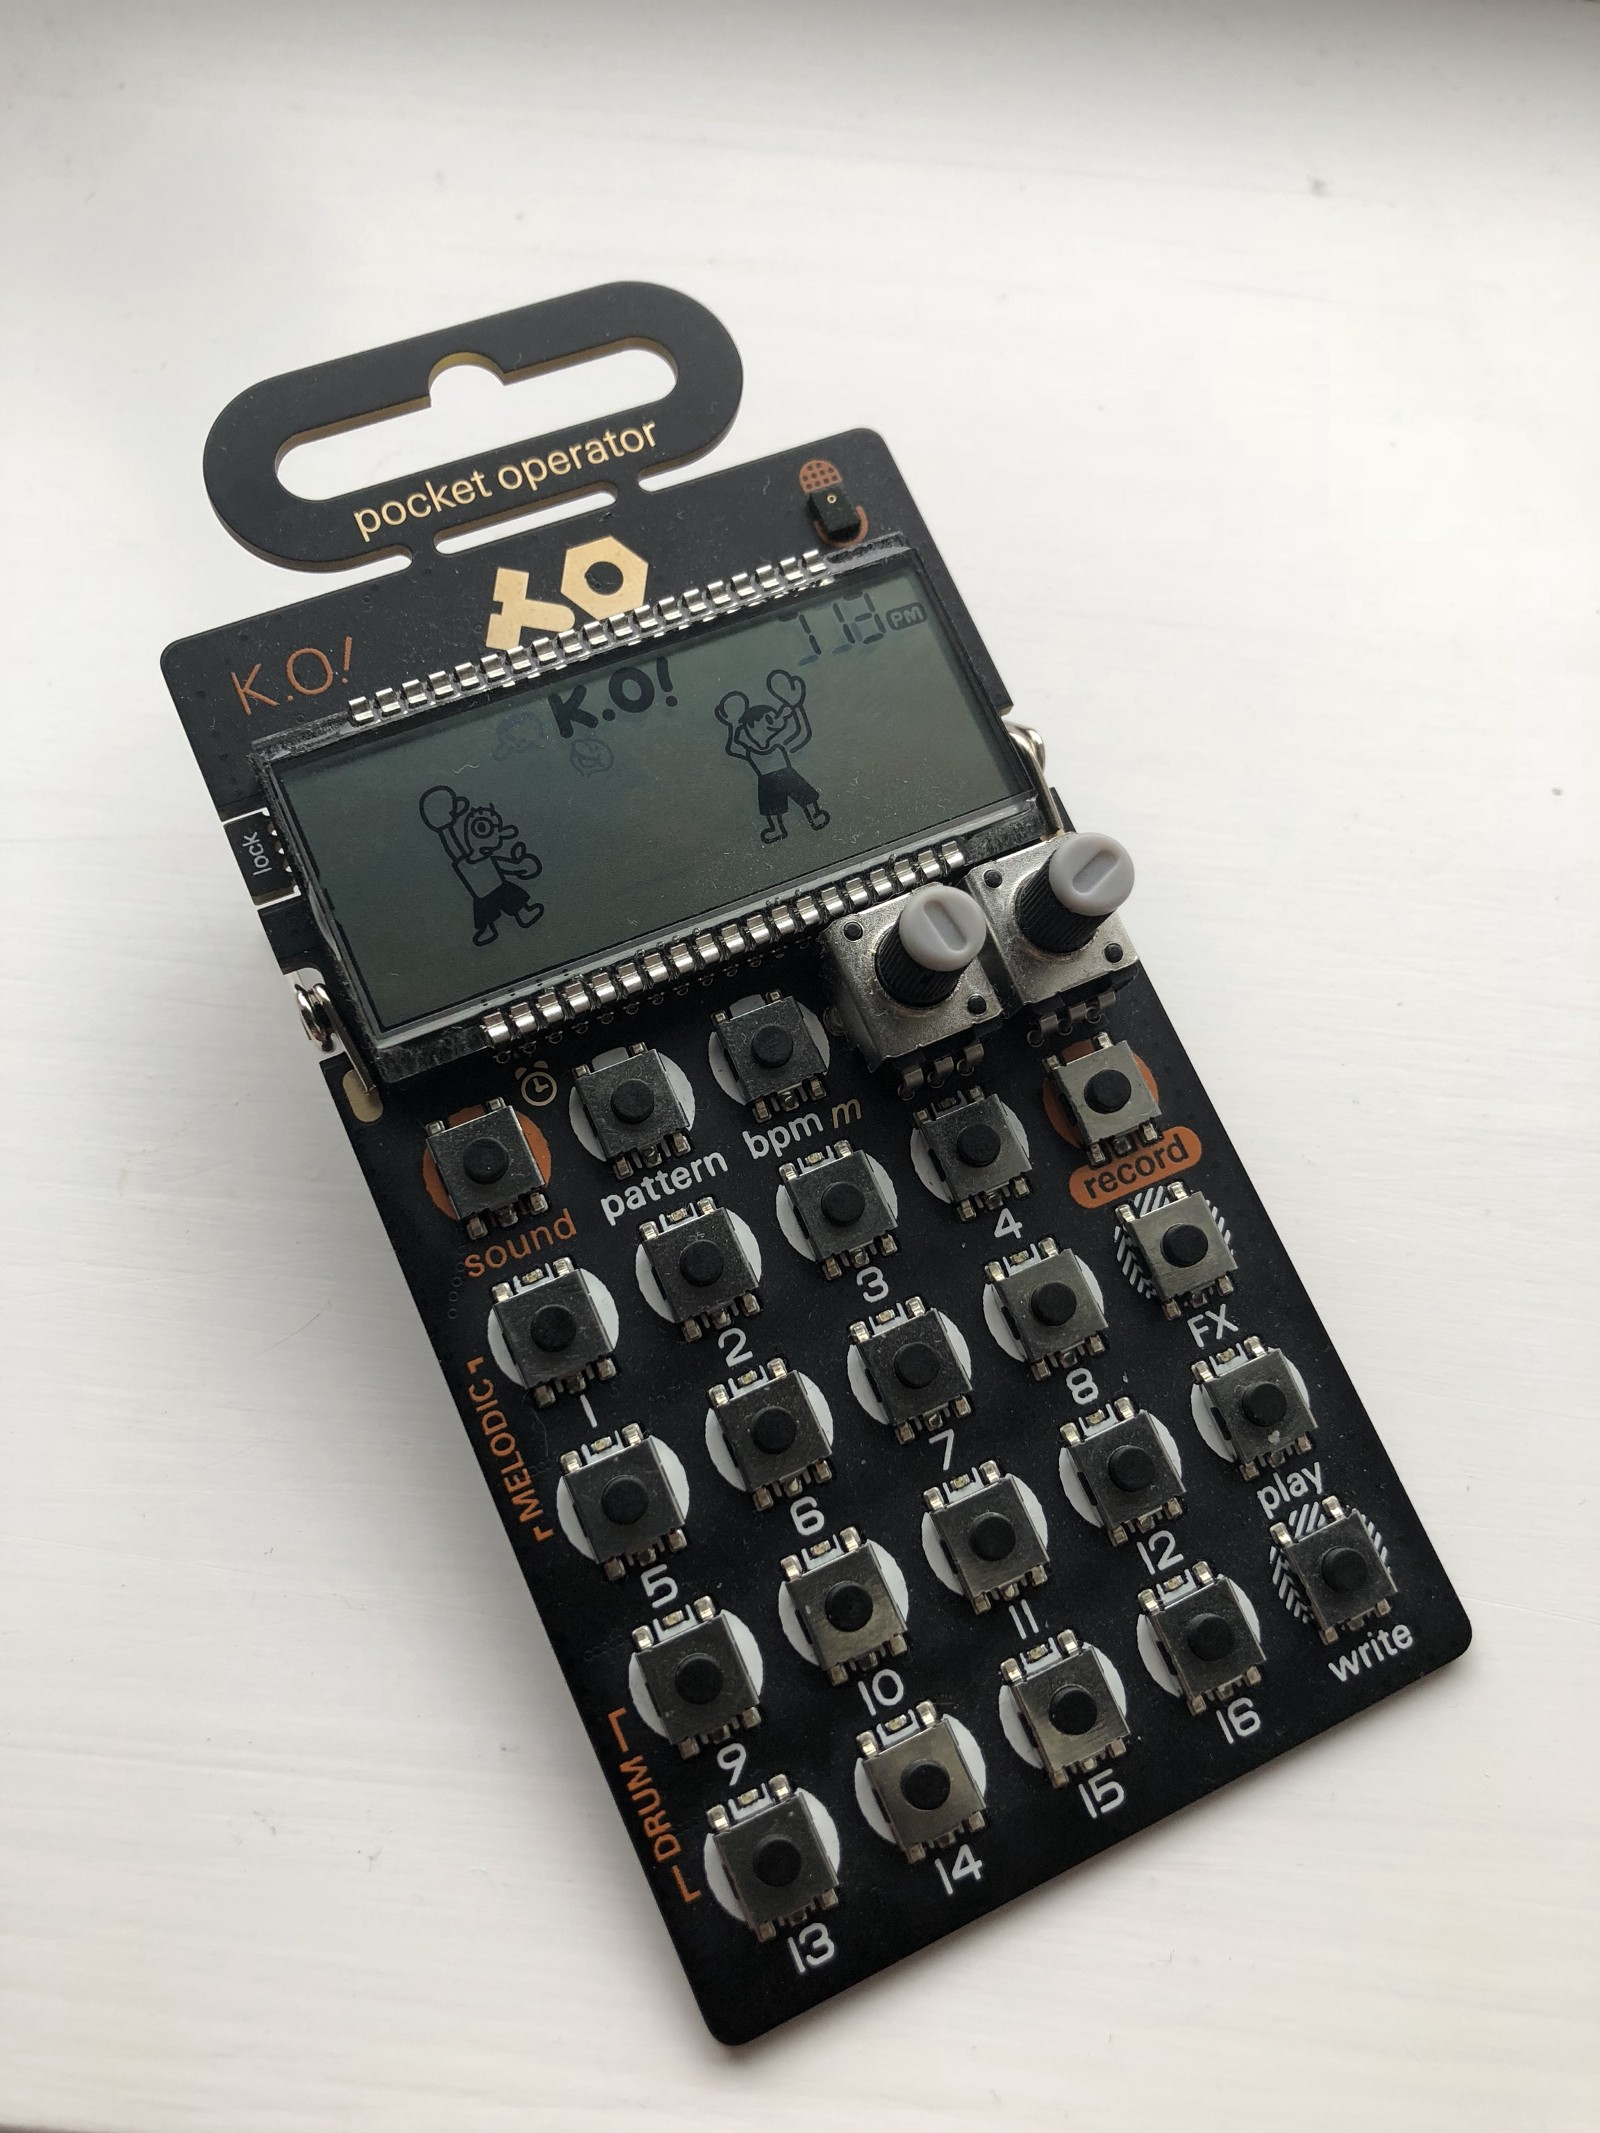 The Complete Teenage Engineering Po 33 Ko Guide Callumhowkins Creative And Cool Ways To Reuse Old Circuit Boards 15 2